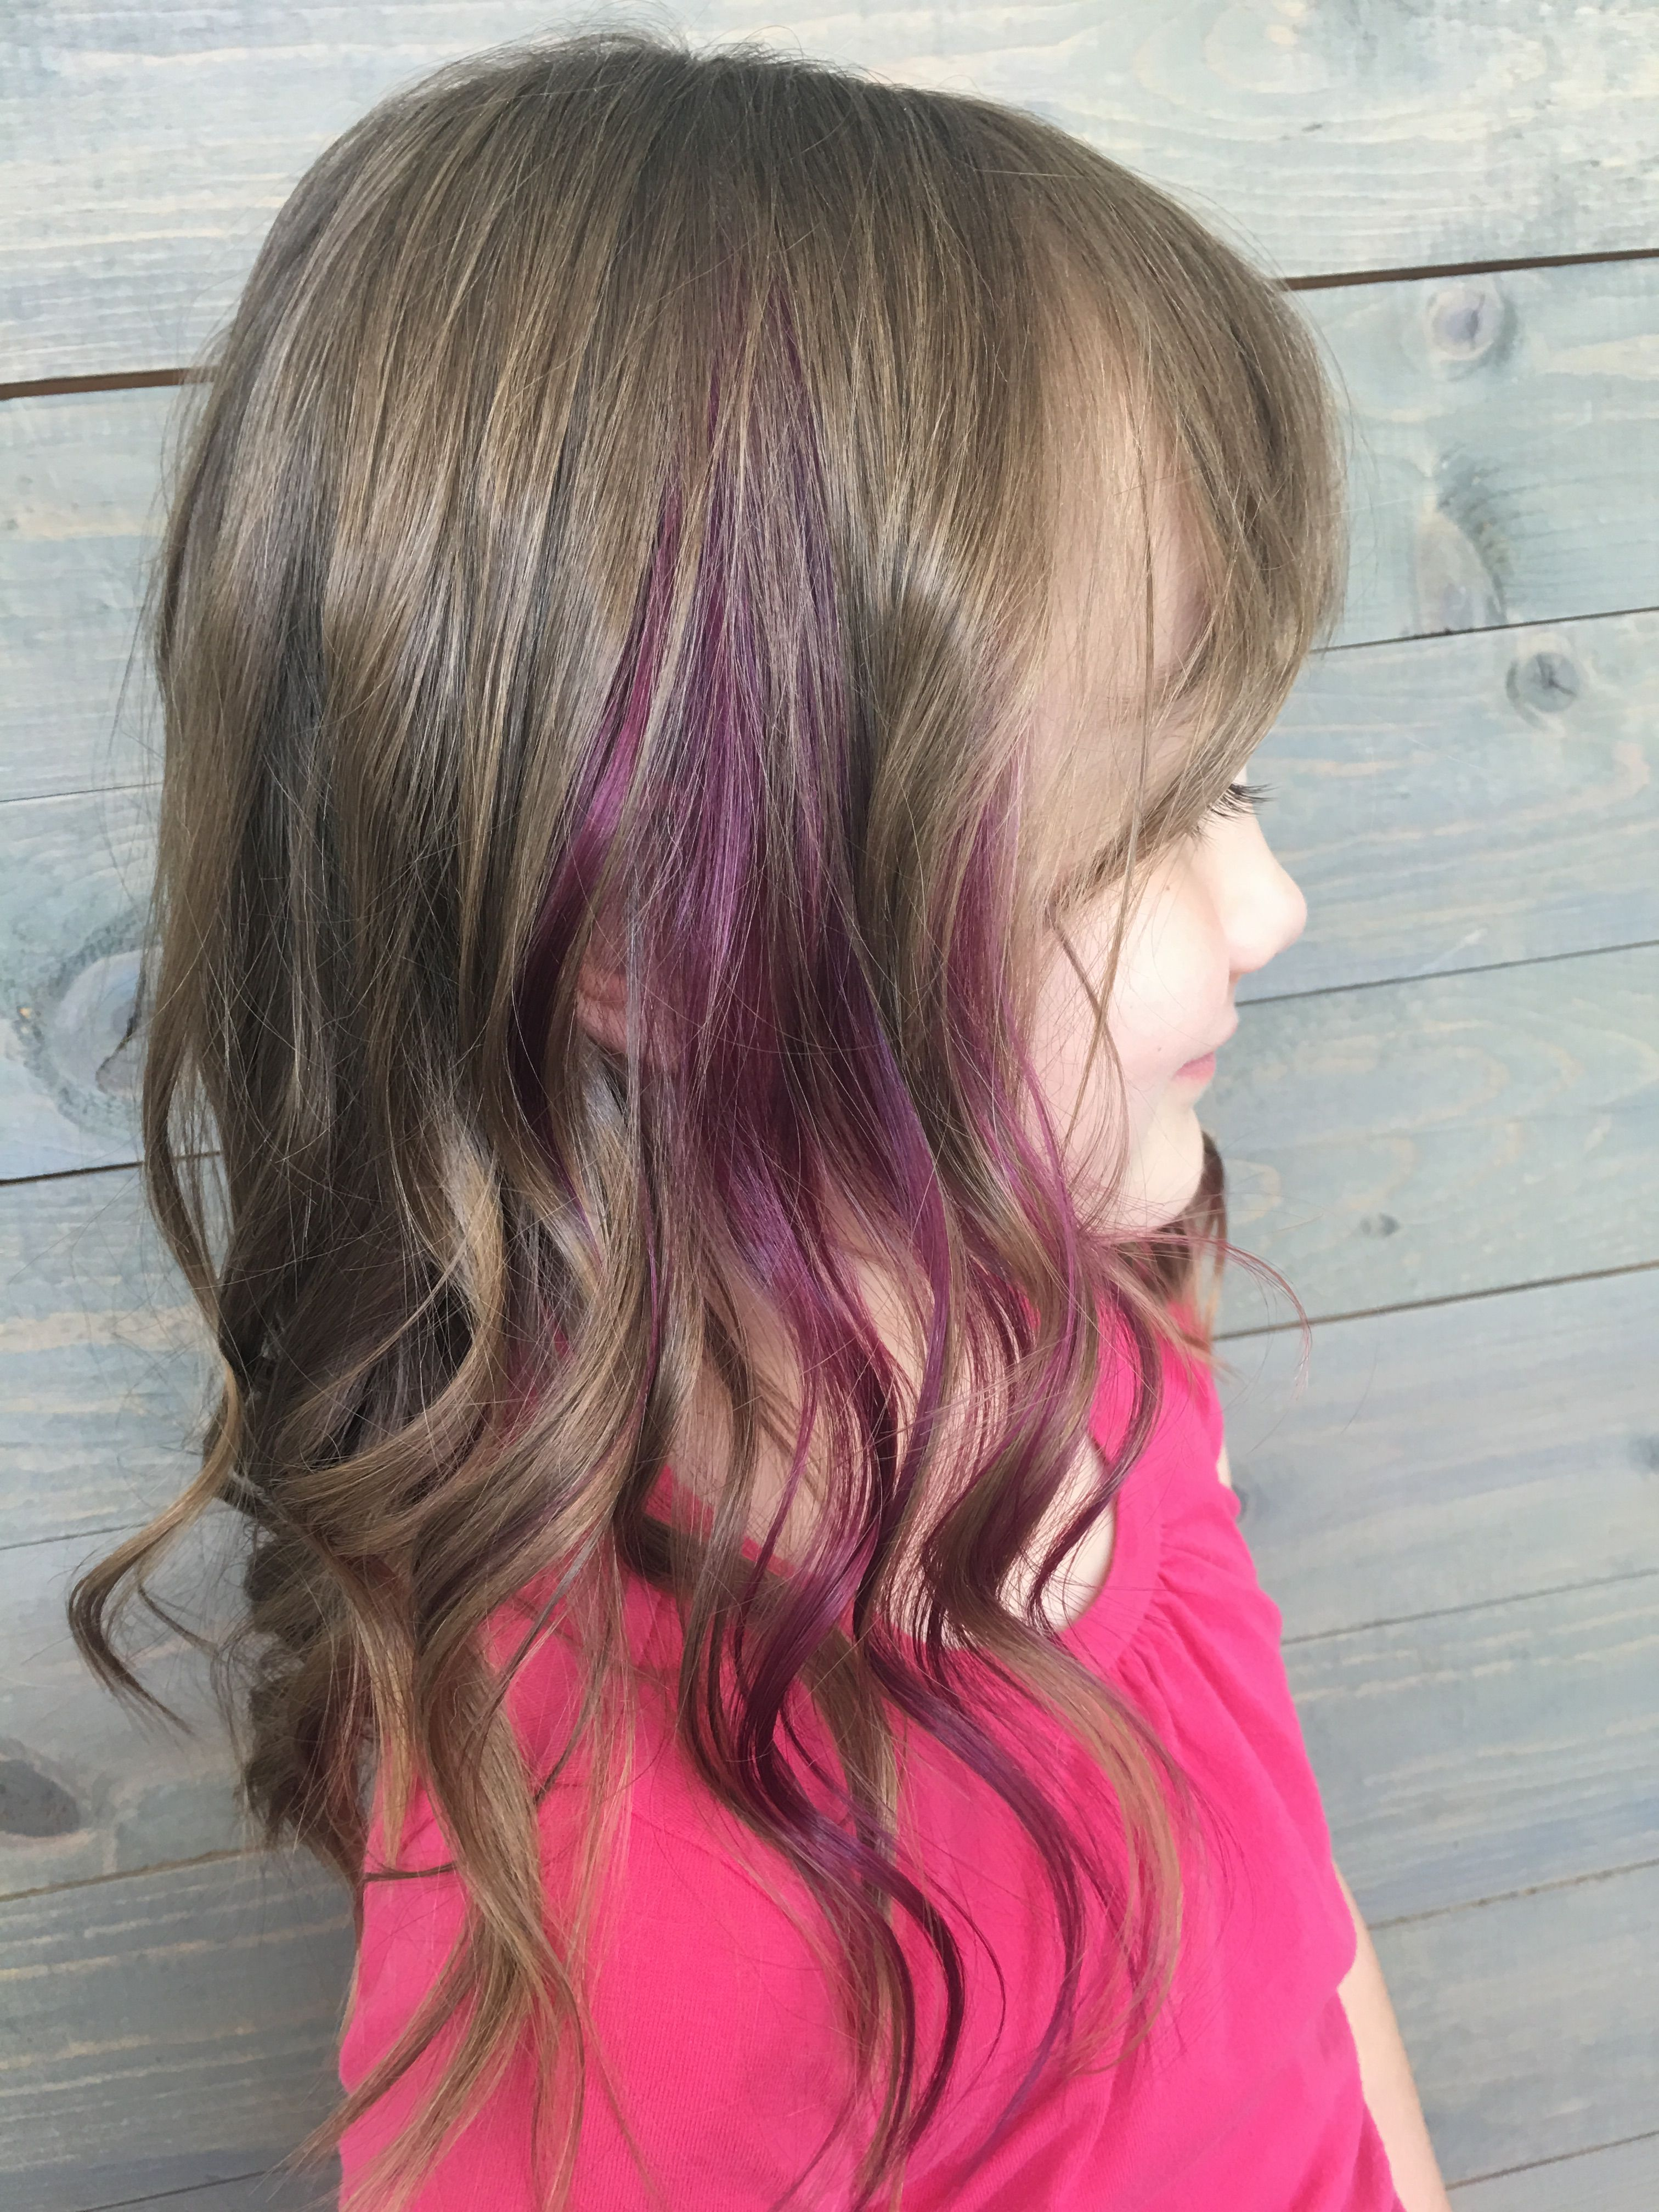 Adorable Little Girl Peekaboo Color Done By Hunter Halverson At Image Studios In South Jordan Ut Kids Hairstyles Girl Hairstyles Beauty